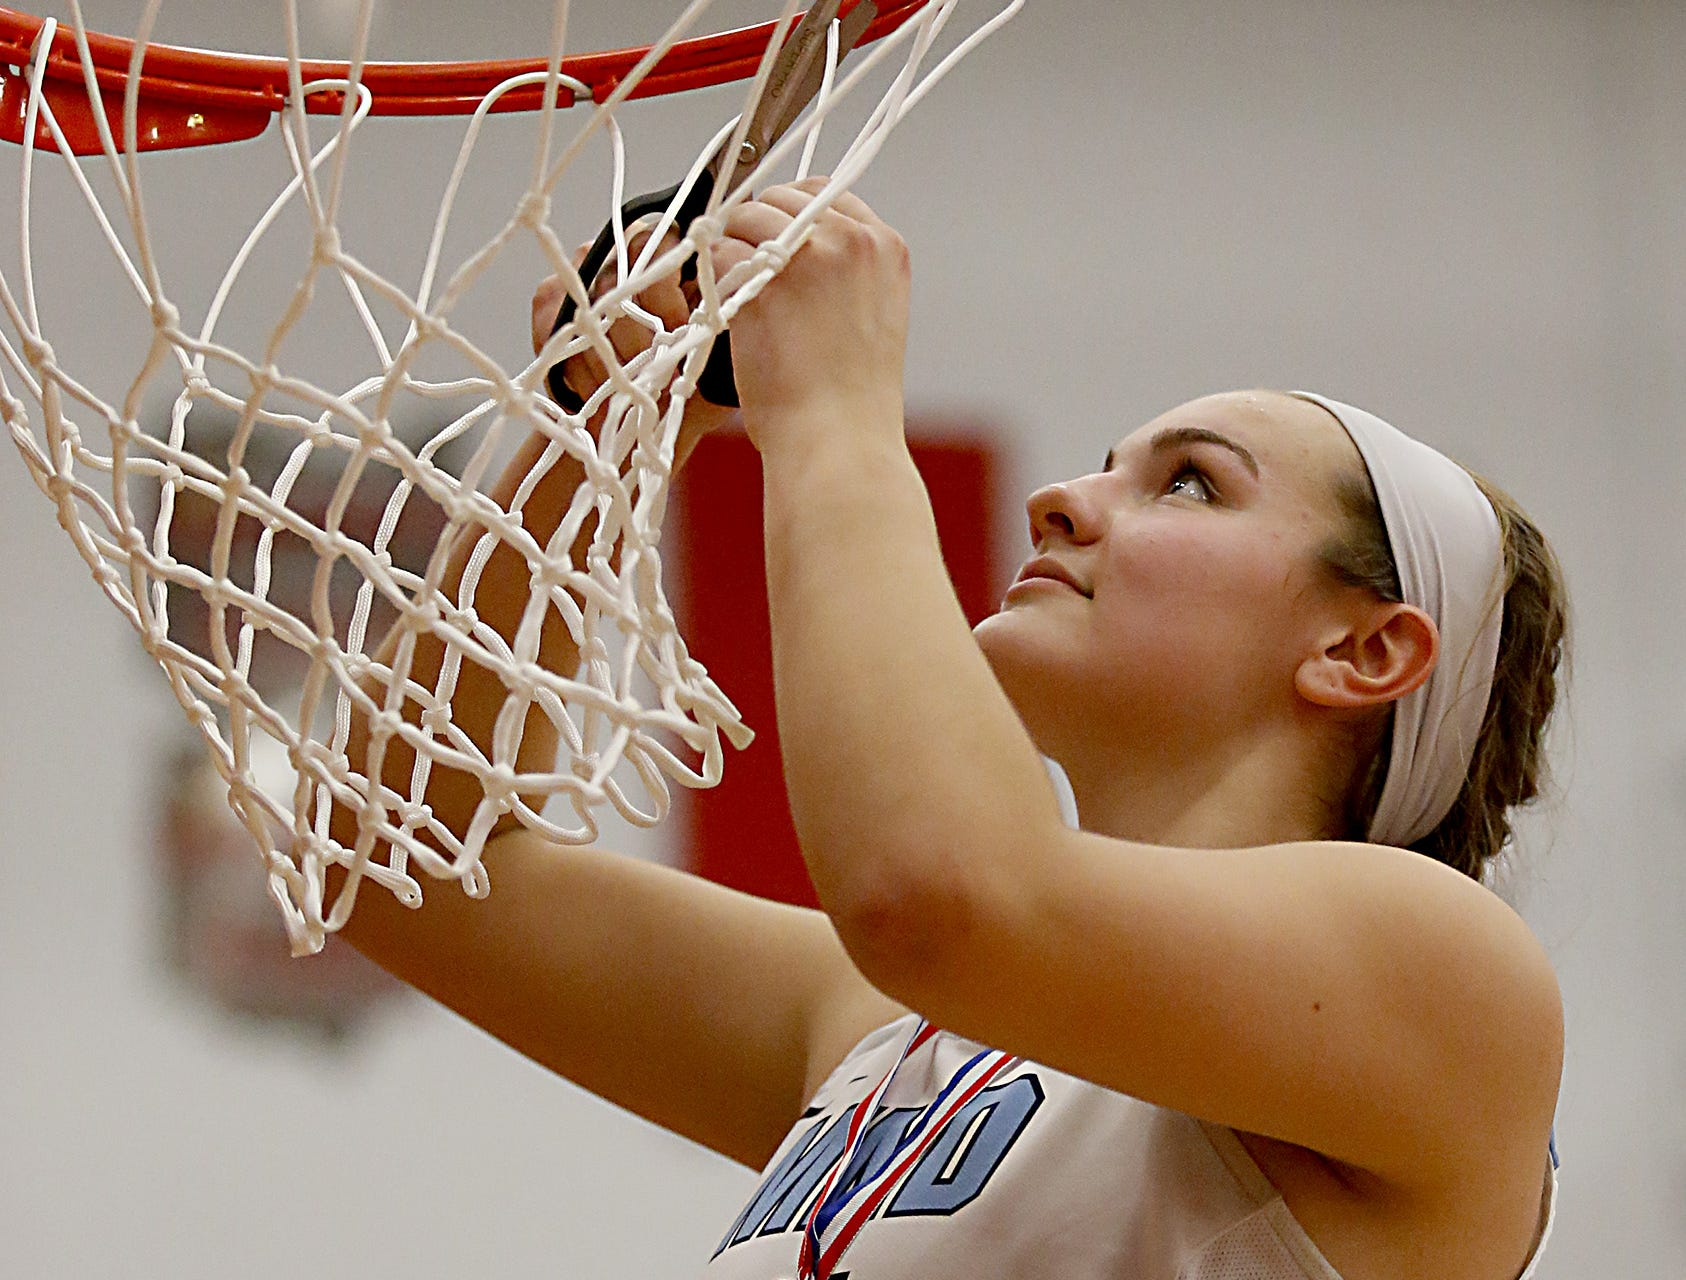 Mt. Notre Dame's Rachel Wiehe cuts the net after defeating Kettering Fairmont in their Southwest District Girls Division I finals at Princeton High School in Cincinnati Saturday, March 2, 2019.